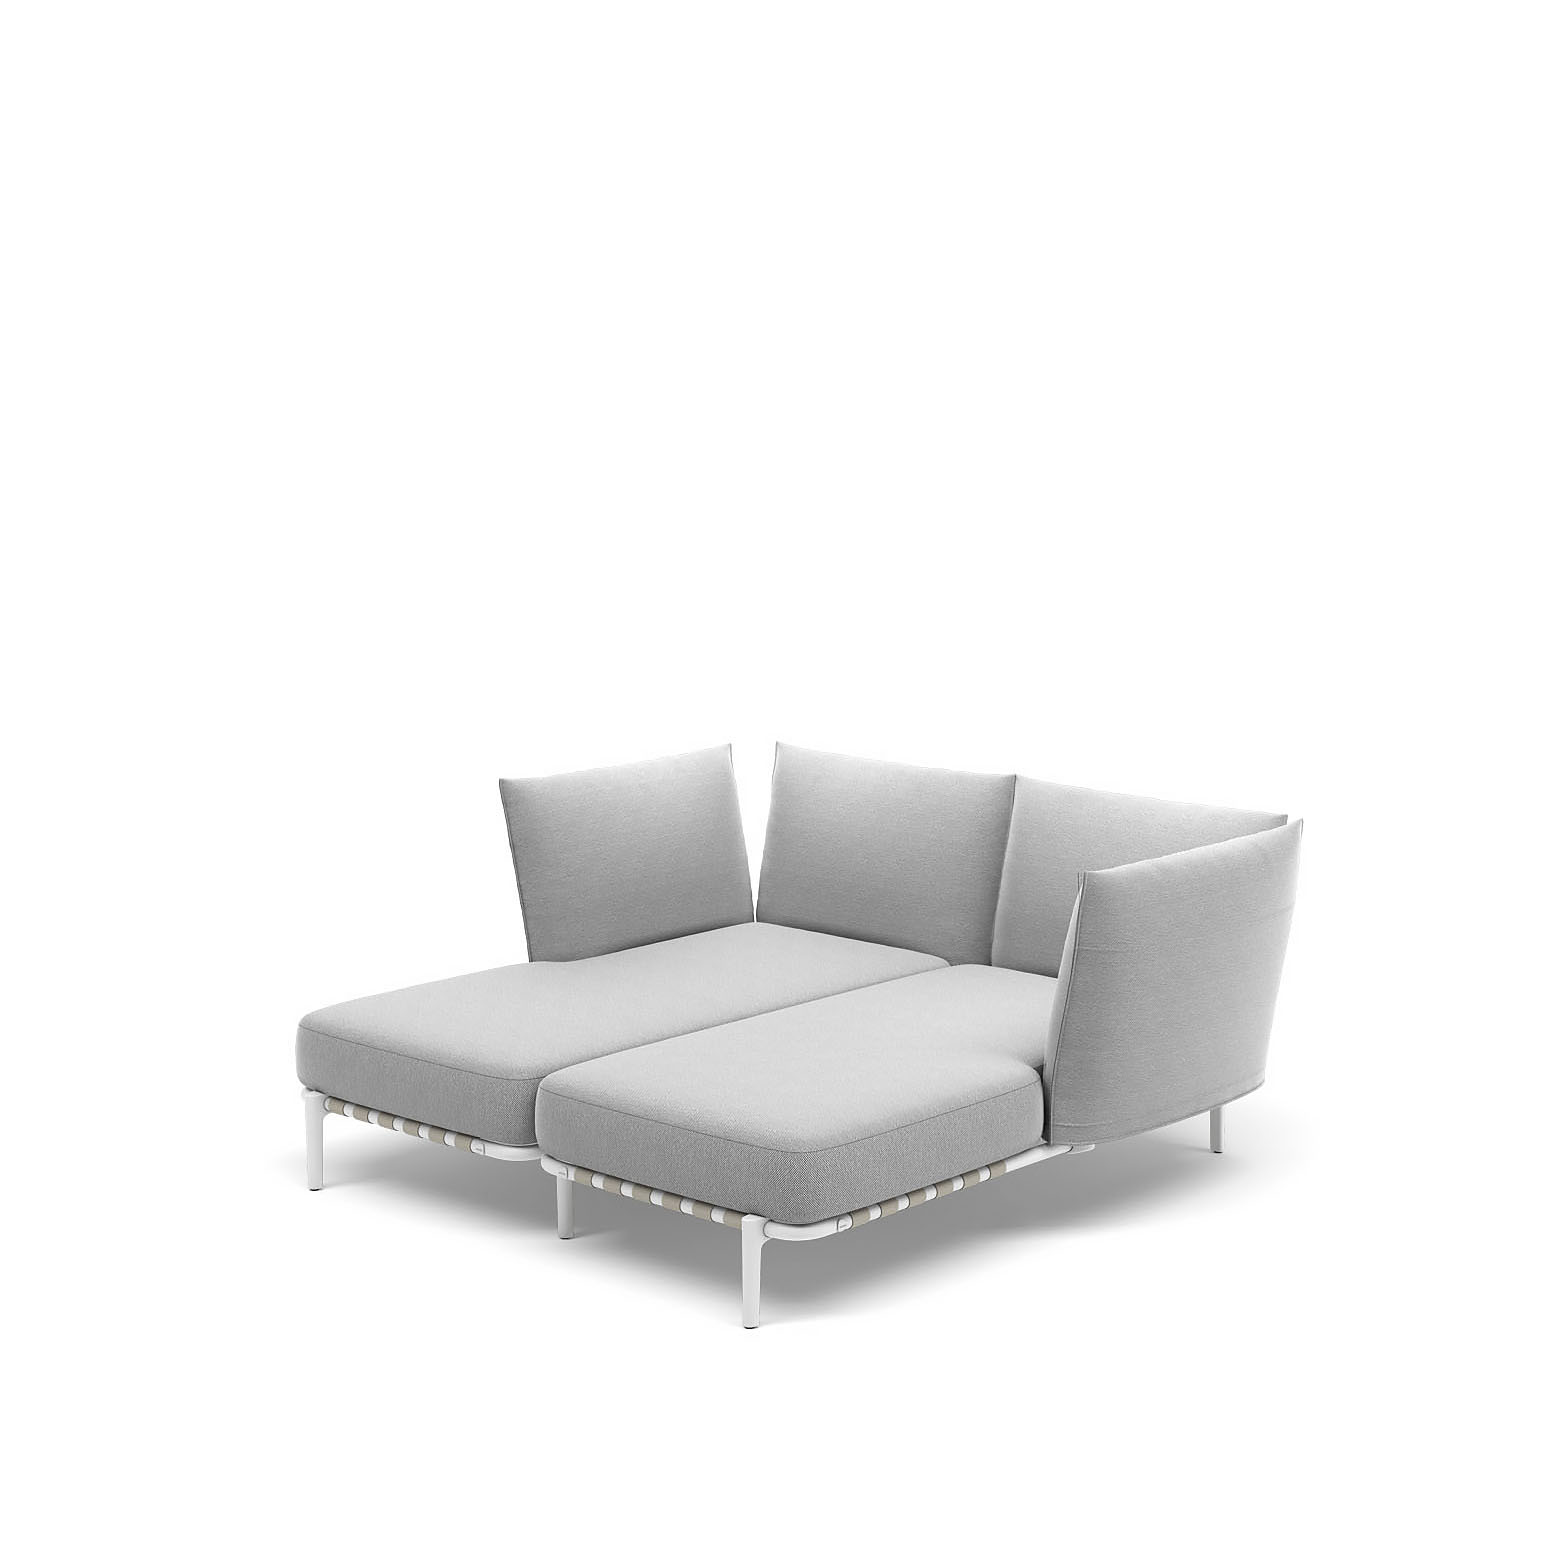 DEDON-BREA-2-Seater-Daybed-right.jpg